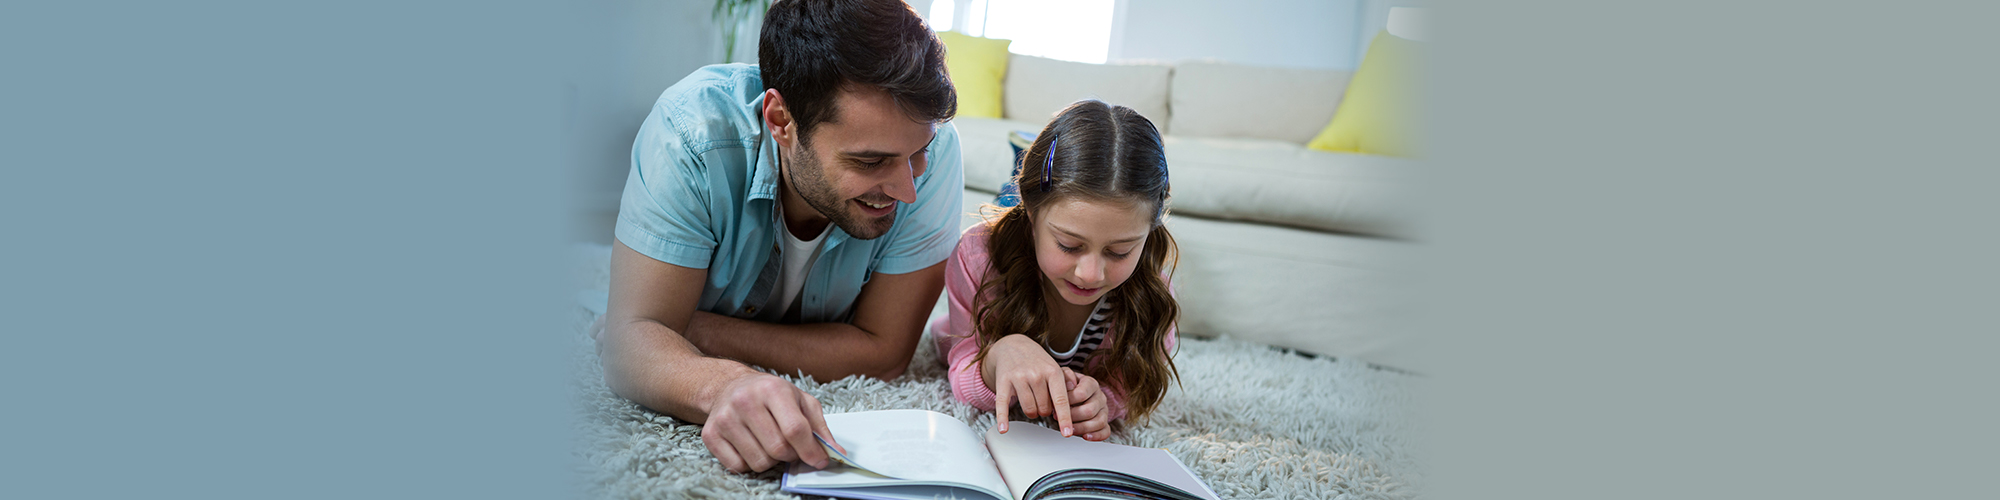 10 Children's Books That Make for a Great Gift